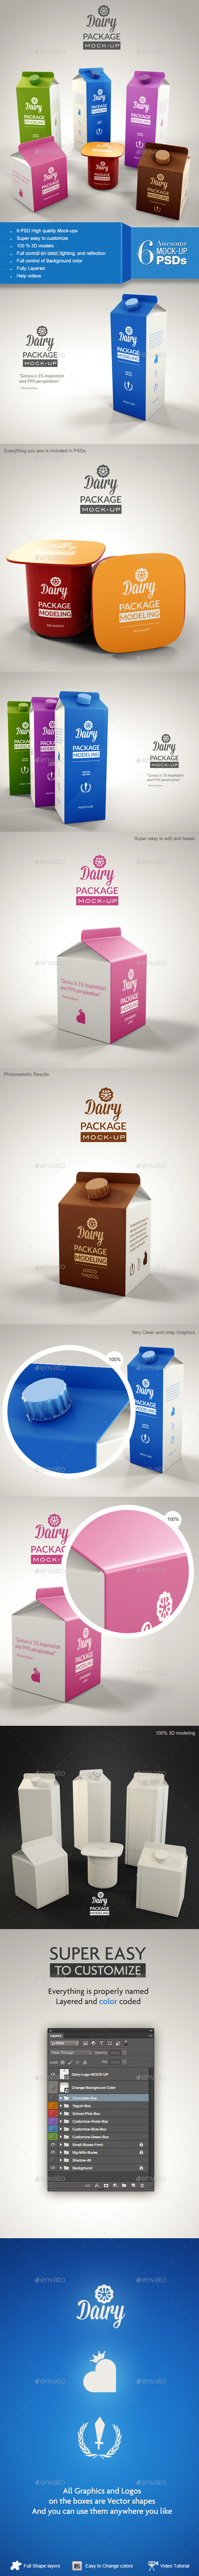 Dairy Branding Package Mock-up